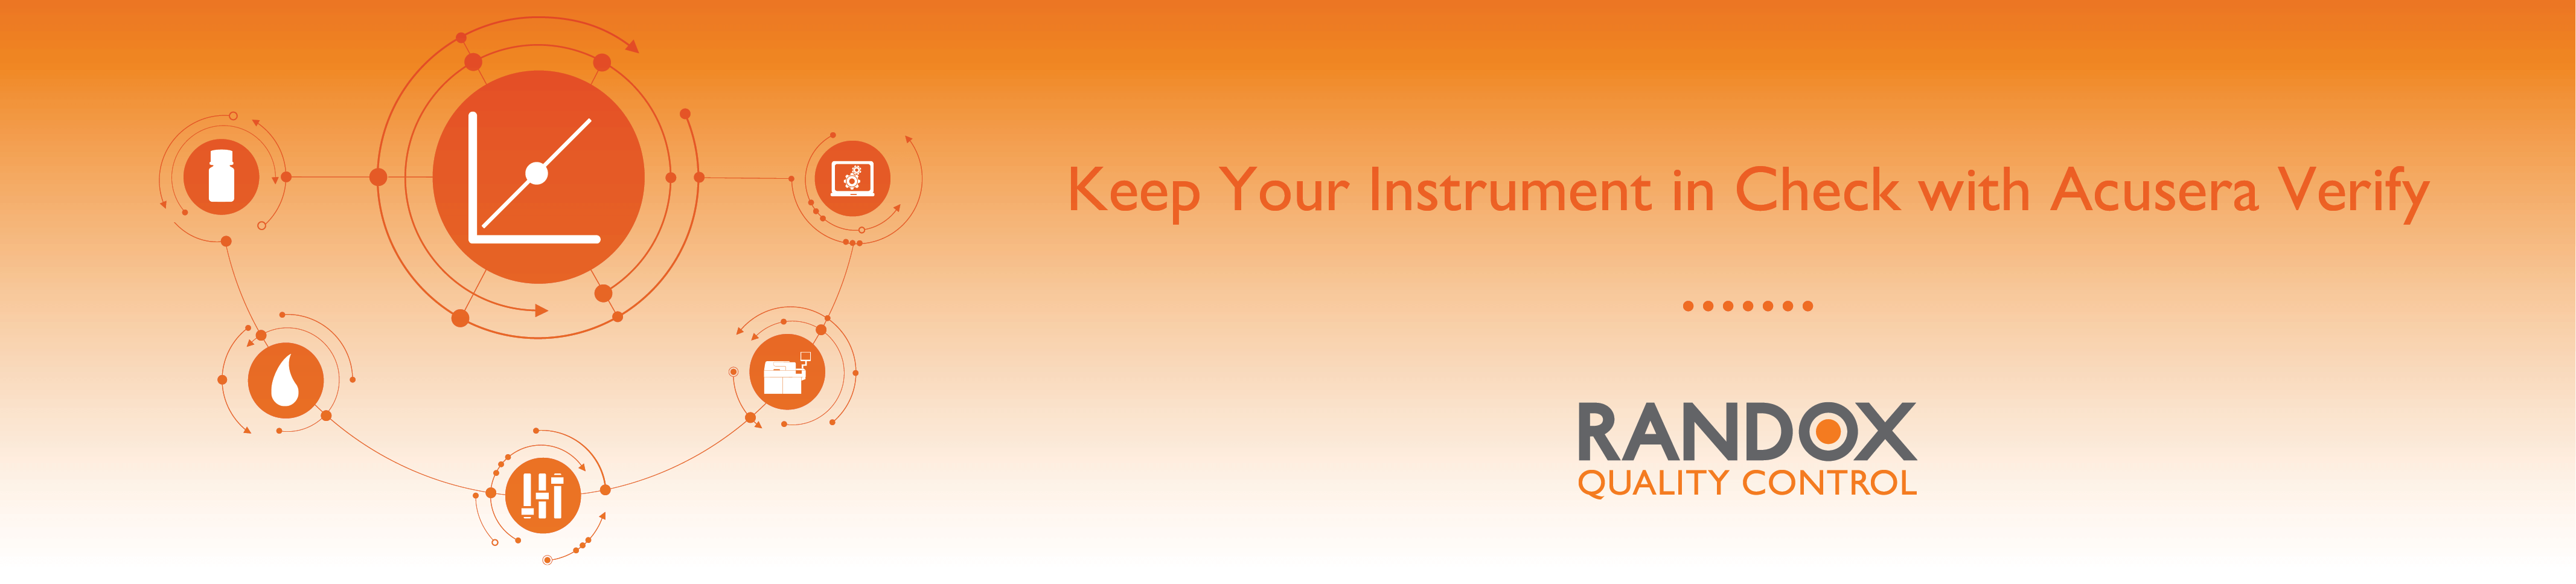 Acusera Verify - Keep your instrument in check